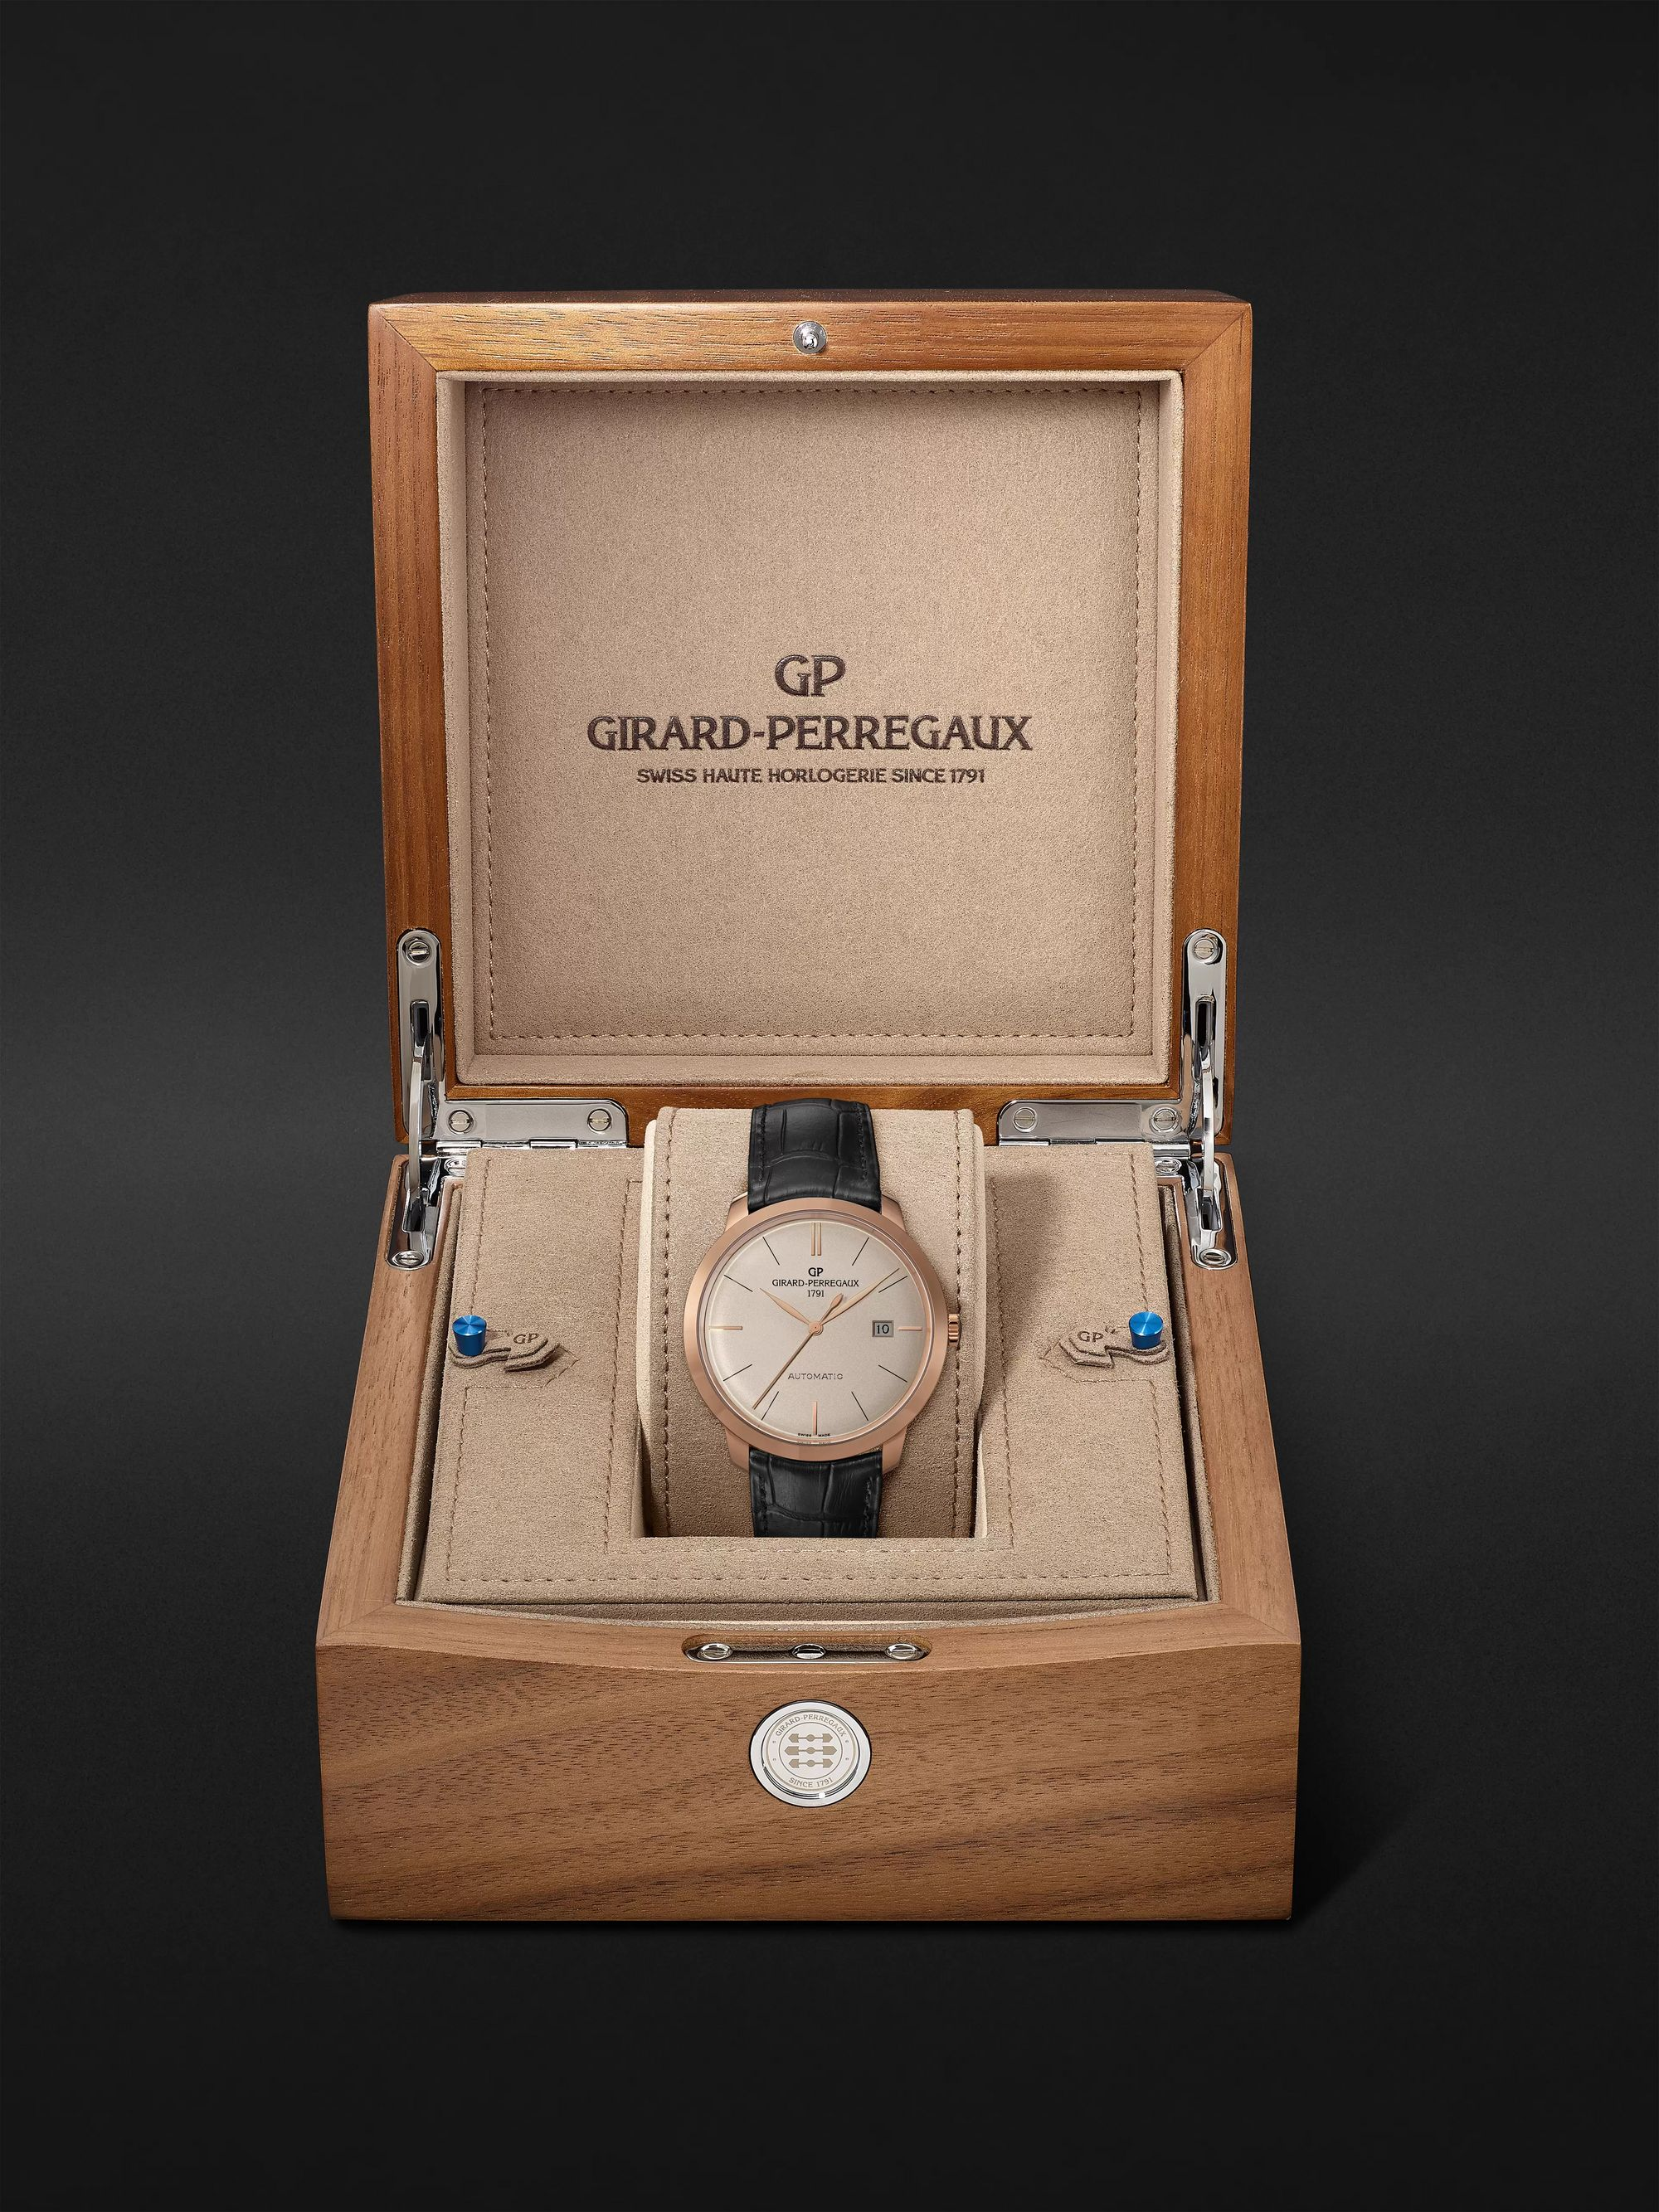 GIRARD-PERREGAUX 1966 Automatic 40mm 18-Karat Rose Gold and Alligator Watch, Ref. No. 49555-52-132-BB60